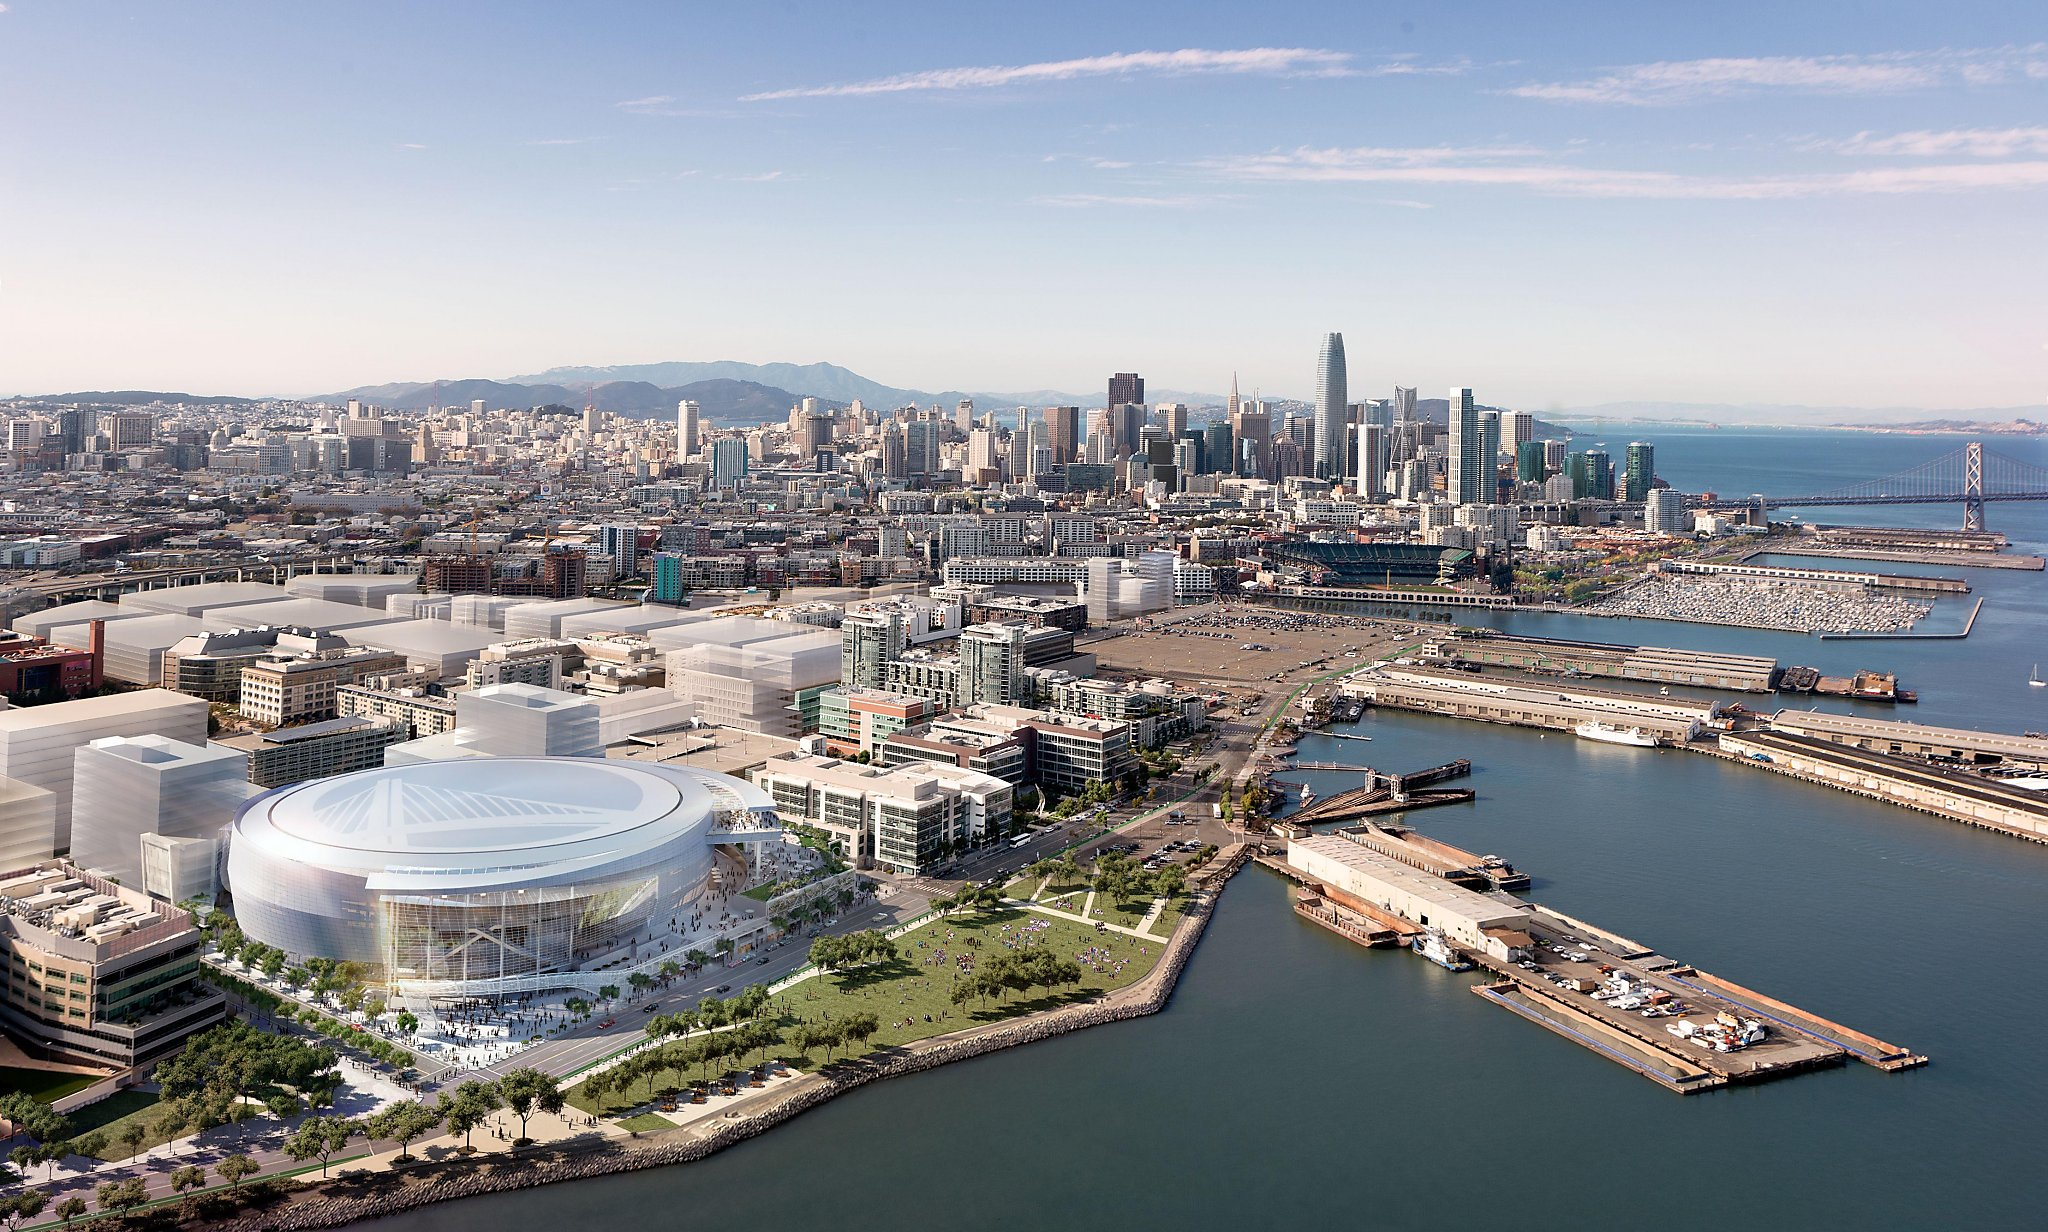 State warriors oracle arena and oakland alameda county coliseum - Rendering Released On Dec 10 2014 Showing A Southwest Aerial View Of The Golden Are Stadium